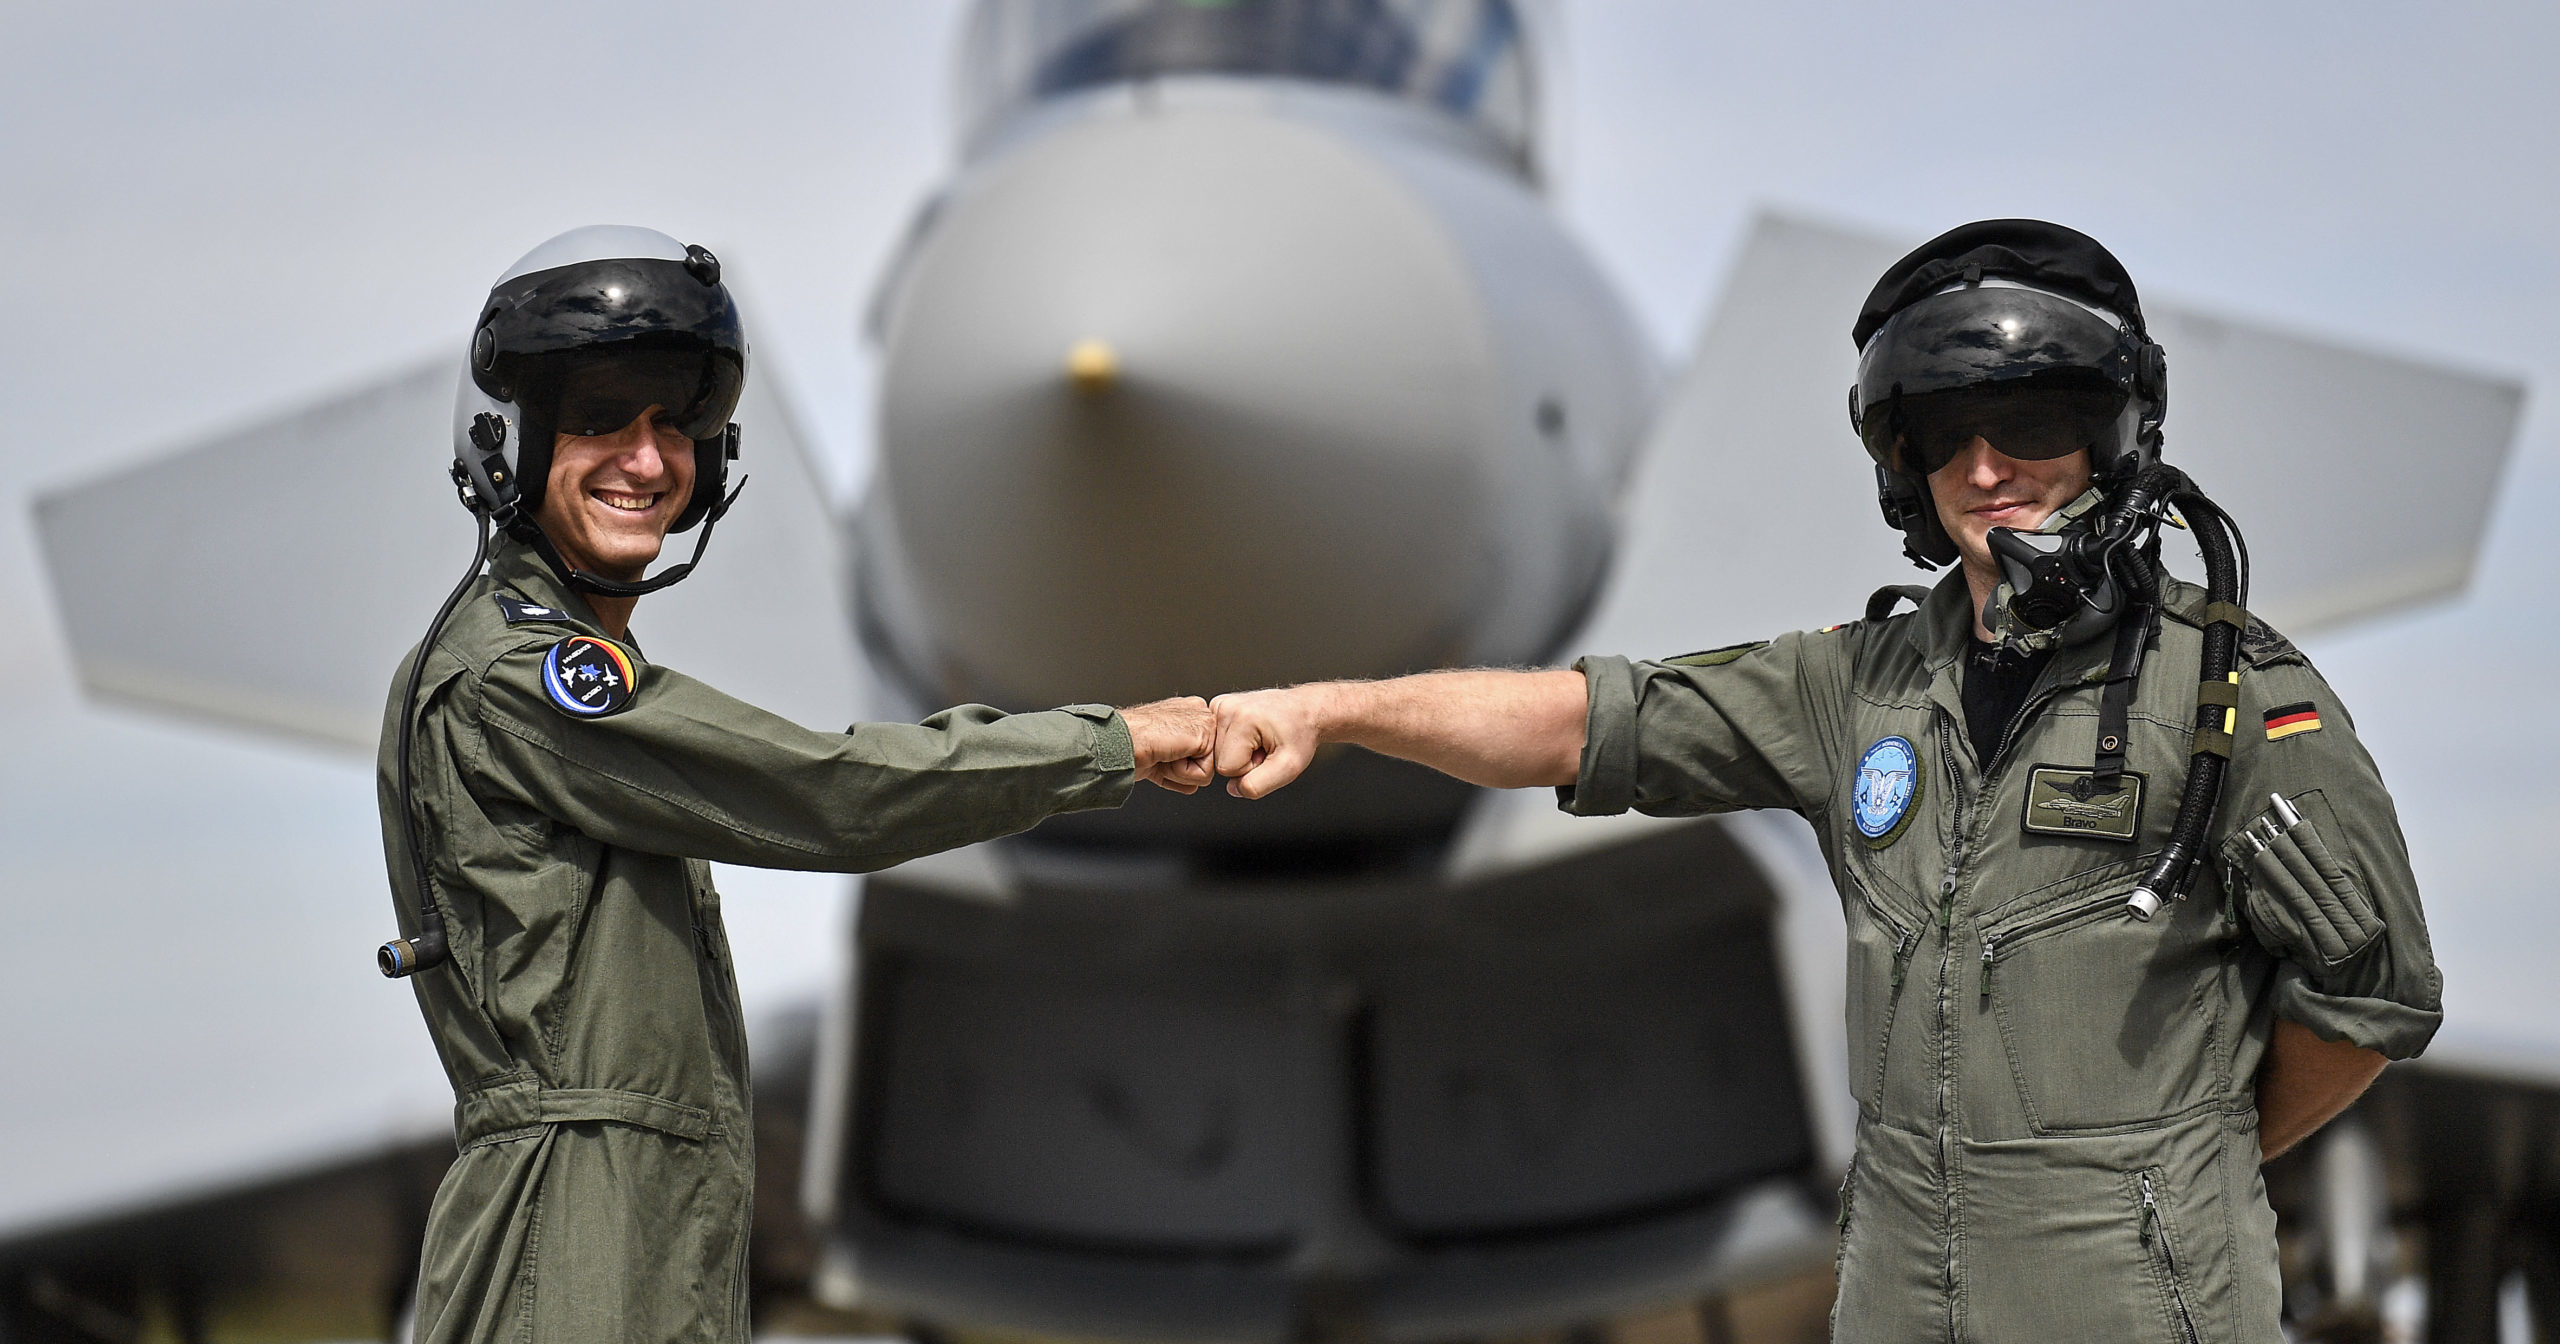 A pilot from Israel, left, and a pilot from Germany, right, pose in front of a Eurofighter at an airbase in Noervenich, Germany, on Aug. 20, 2020. Pilots from Israel and Germany will fly together over the next two weeks during the first joint military air exercises between the two nations.